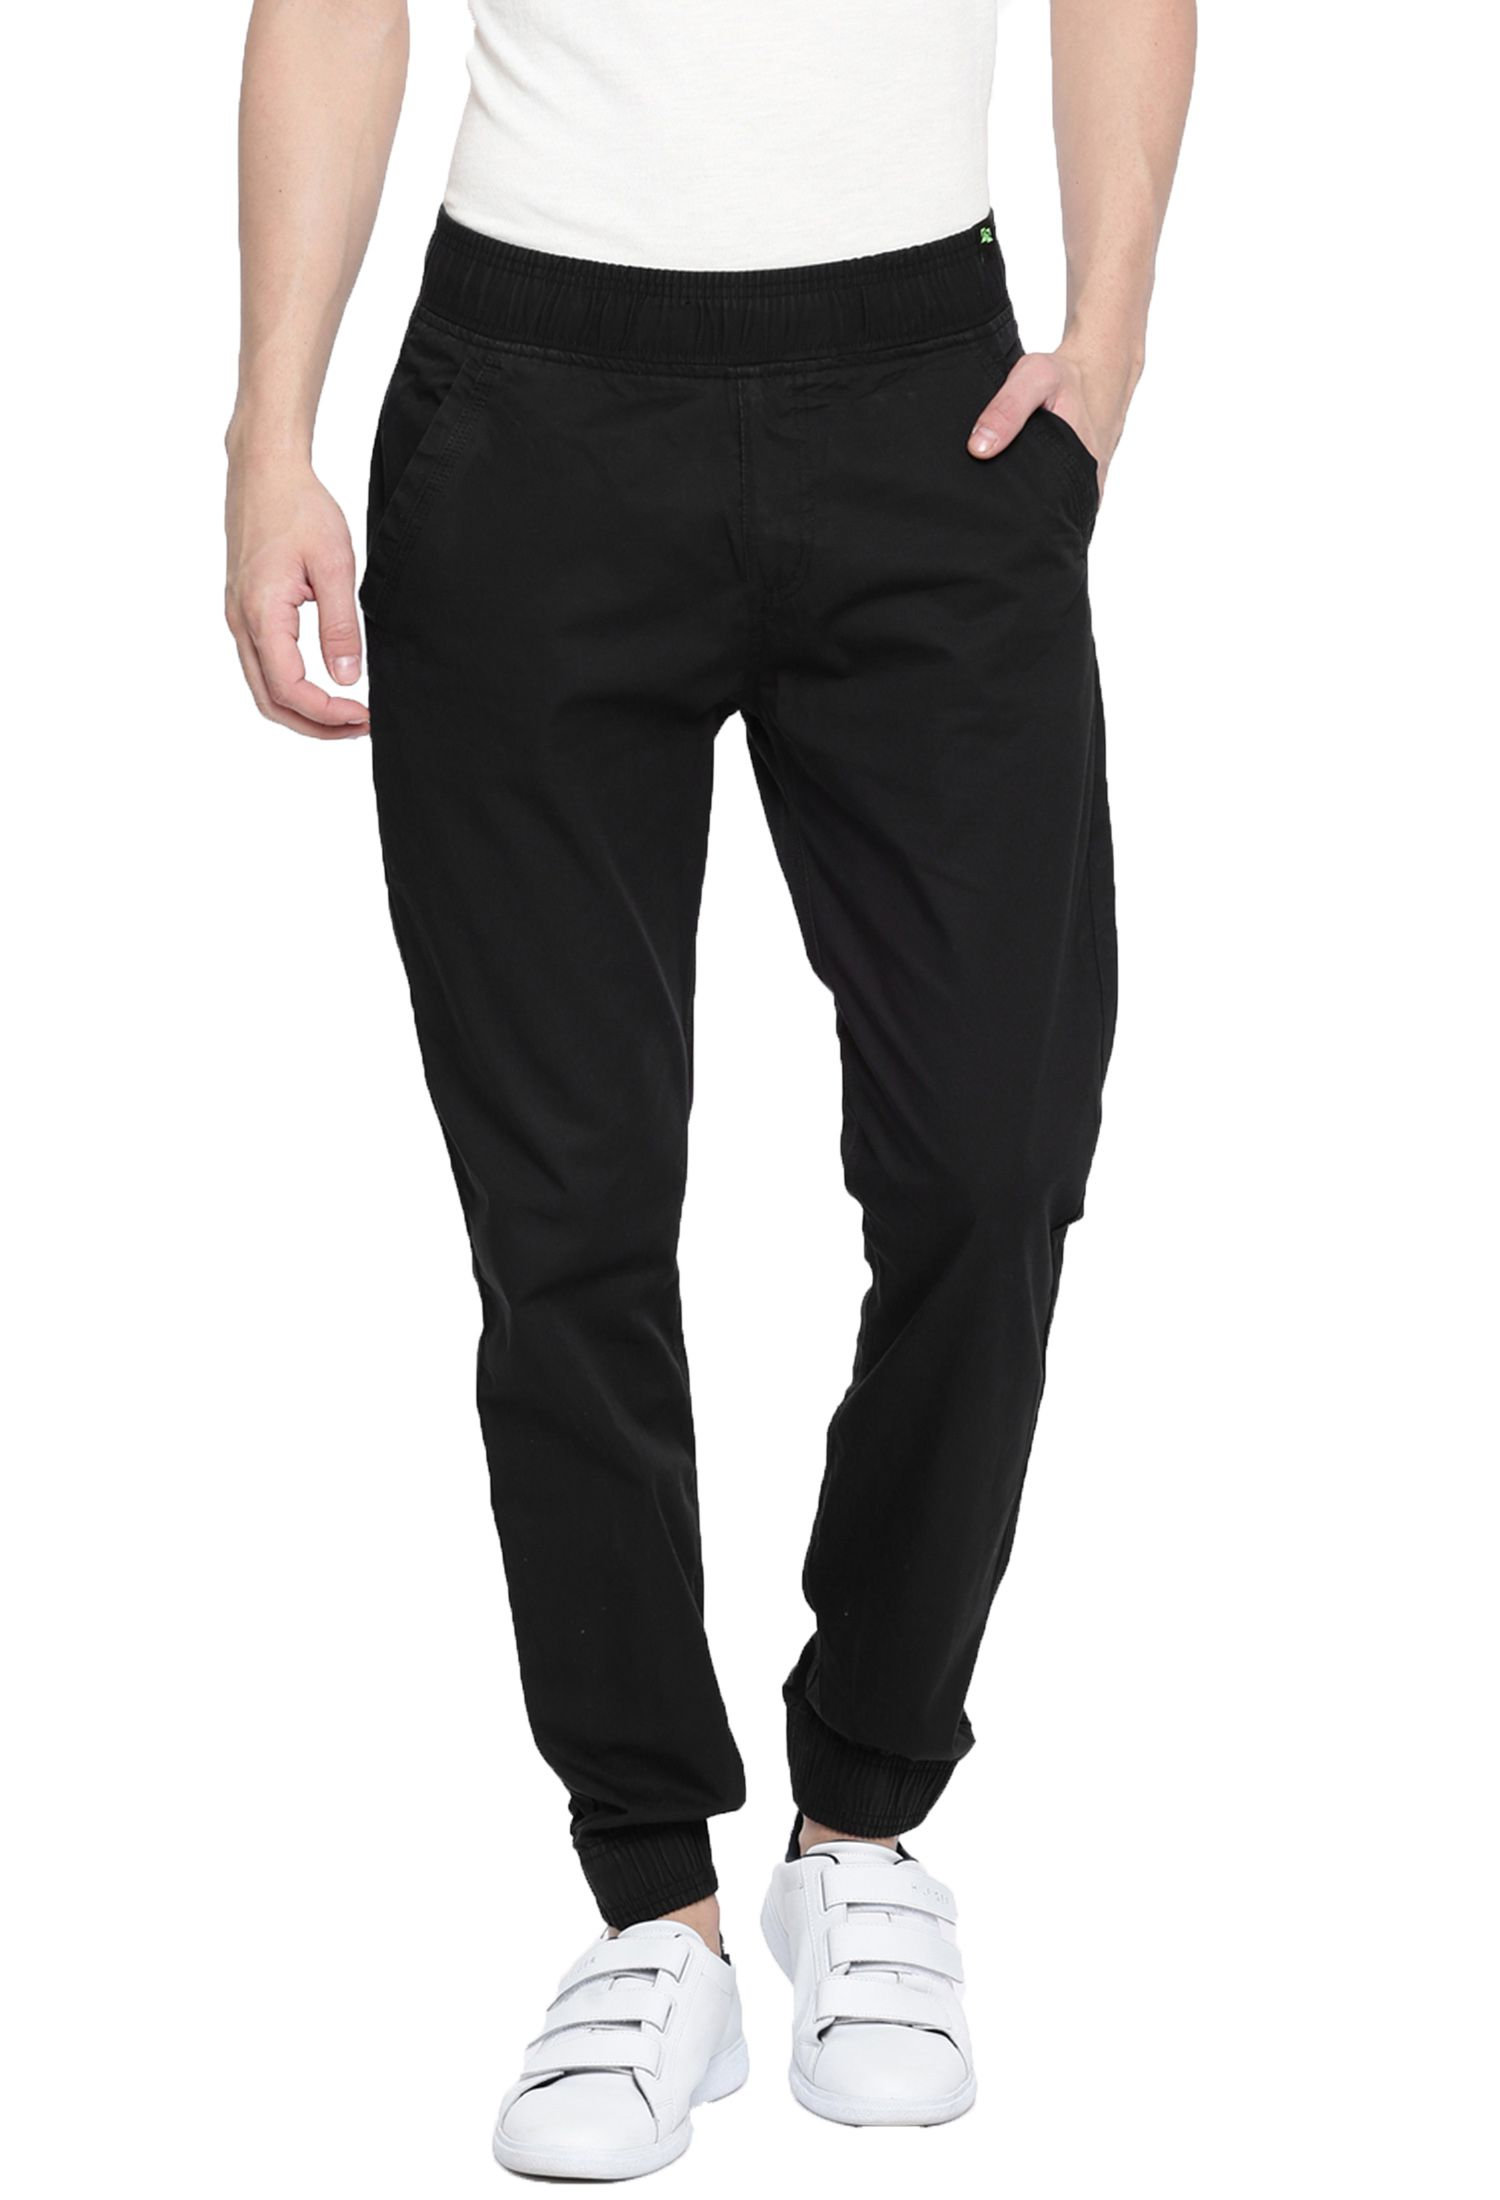 FIFTY TWO Black Slim -Fit Flat Joggers